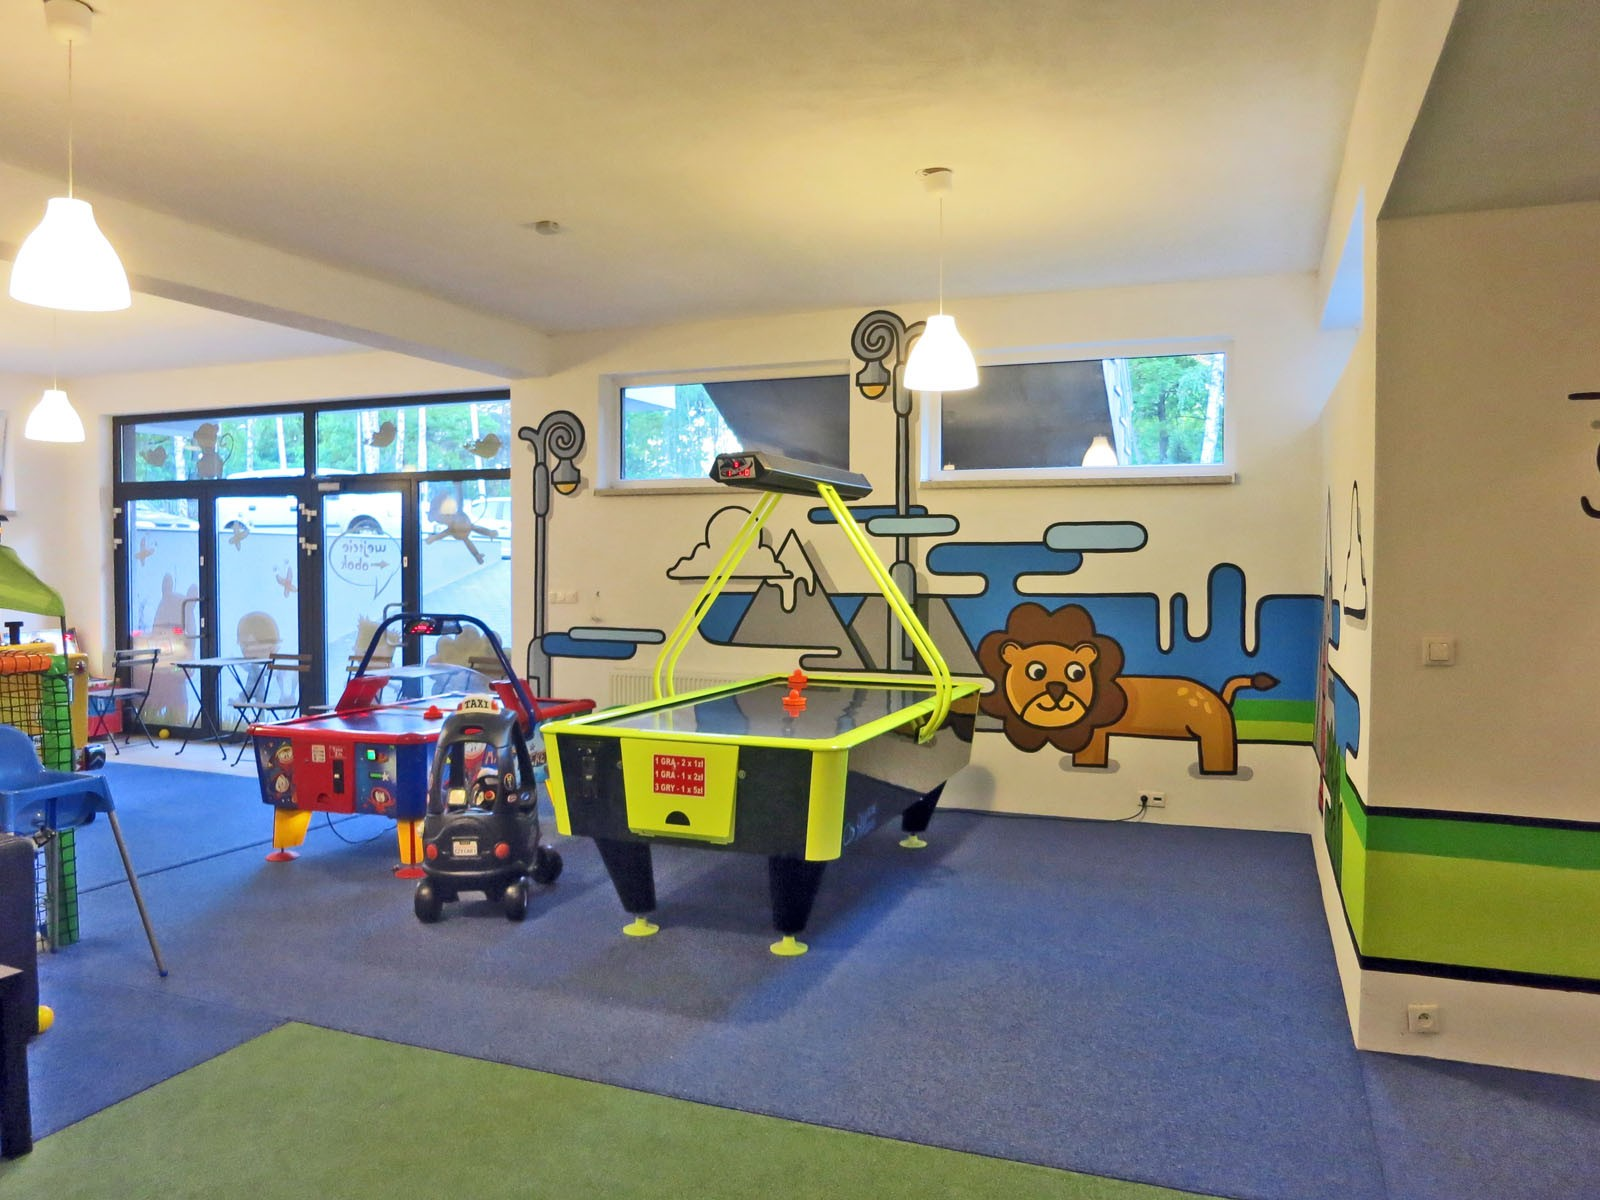 Children's playground inside City Zoo - Stara Milosna | Playroom | Portfolio